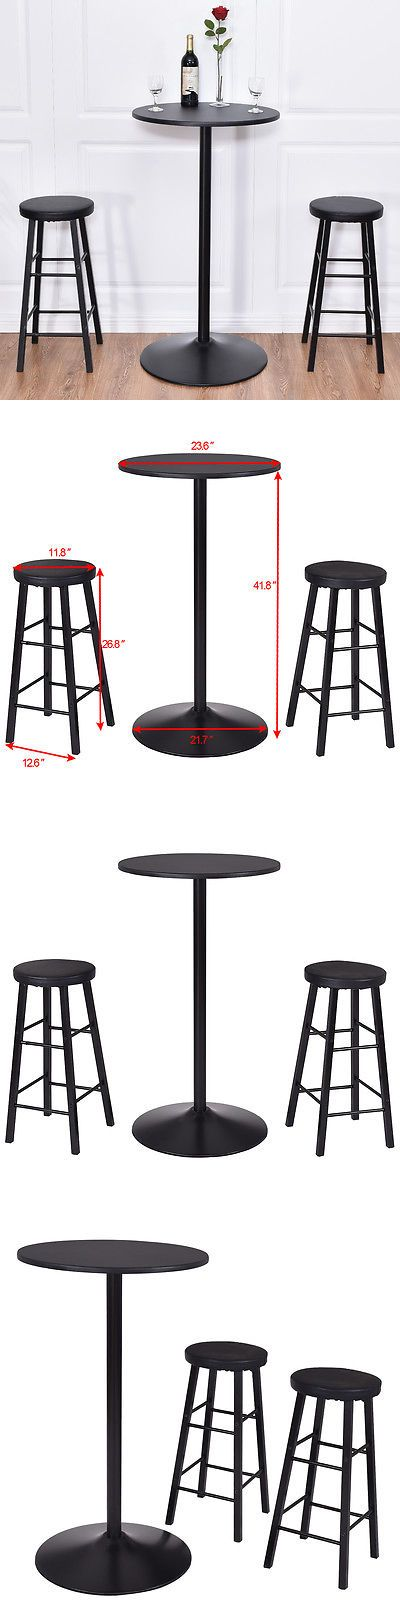 Home Pubs and Bars 115713: 3 Pc Round Bar Table Set W 2 Stools Bistro Pub Kitchen Dining Furniture Black -> BUY IT NOW ONLY: $79.99 on eBay!